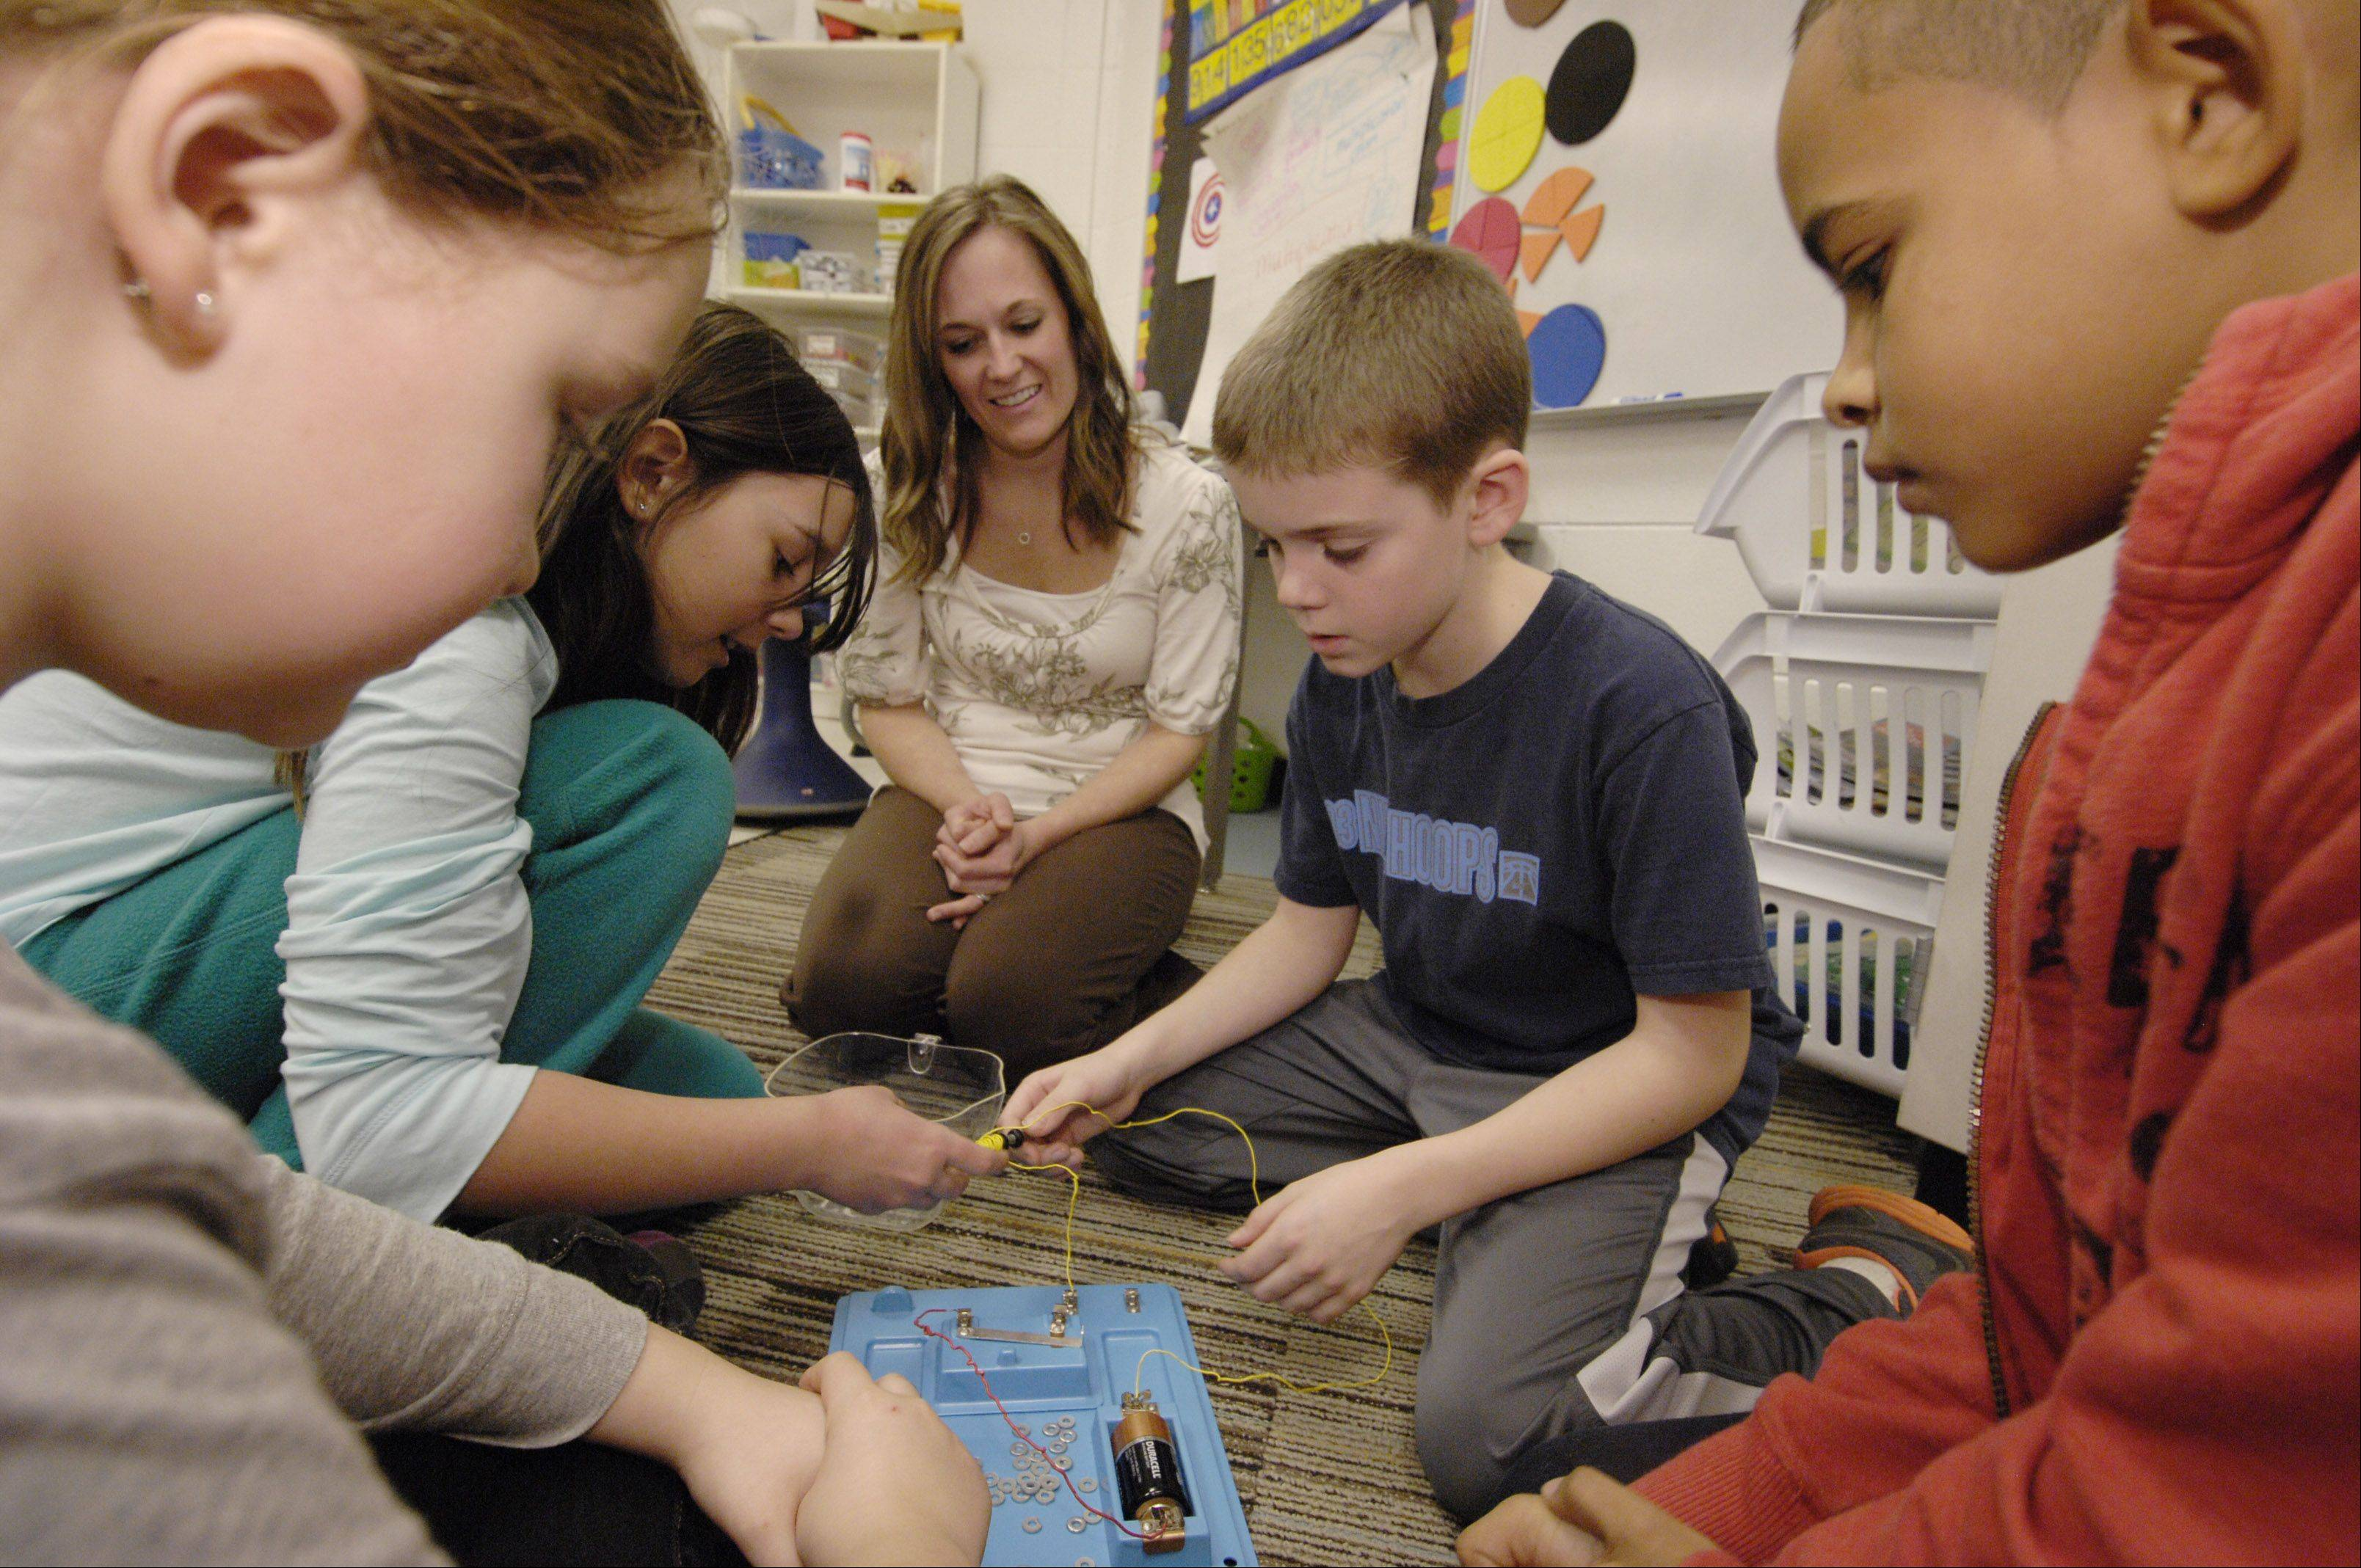 Fourth-grade students Alice Gramlich, Lilia Carman, Zach Bertrand and Ajani Rowland work on an electromagnet project with teacher Dee Dee Aldrich at Churchill Elementary School in Glen Ellyn. District 41 officials are proposing to combine grade levels as part of an effort to better focus on science, math and literacy instruction.